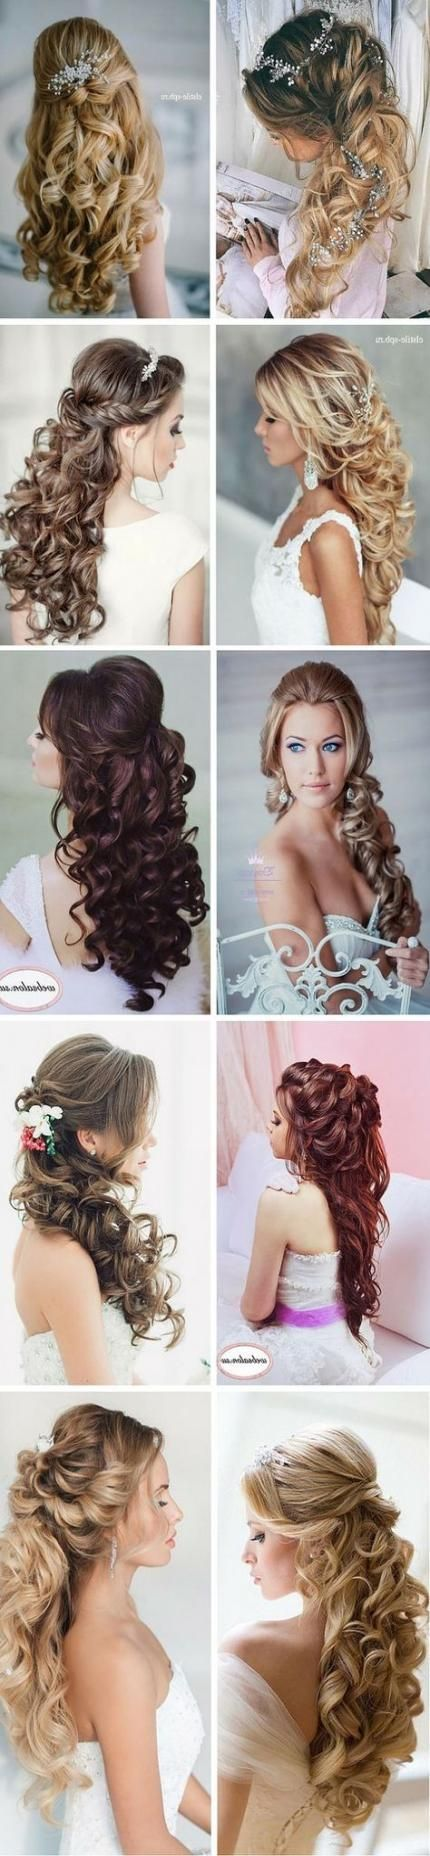 49 Ideas for long hair wedding hairstyles, half curly until 2019 #Wedding … – wedding hairstyles – #bis #the # for # lured